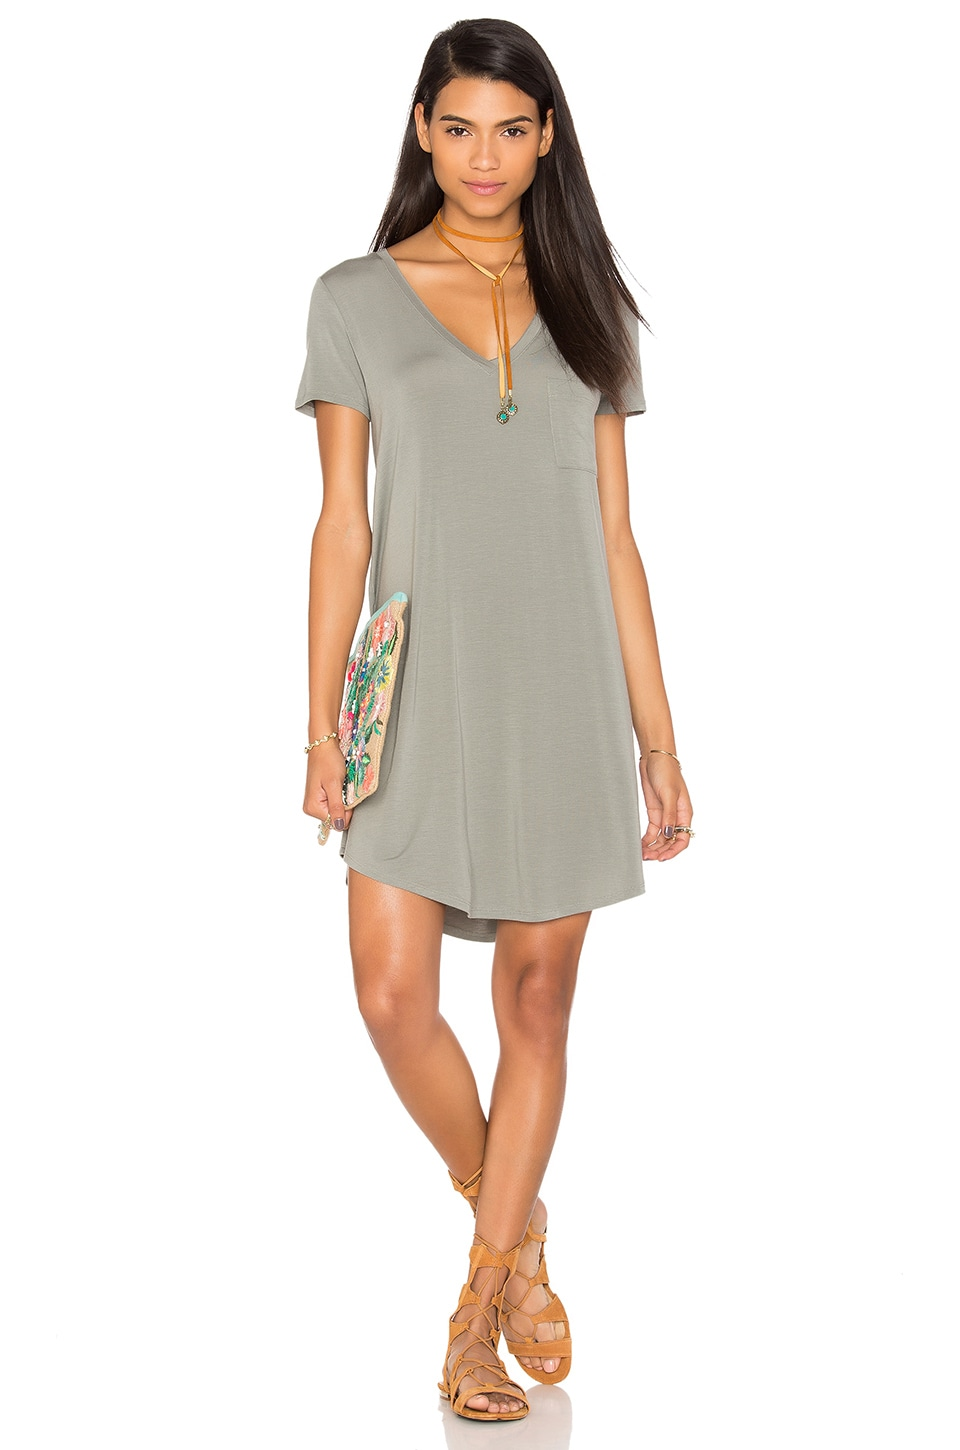 Heather V Neck Pocket Tee Dress in Cobblestone